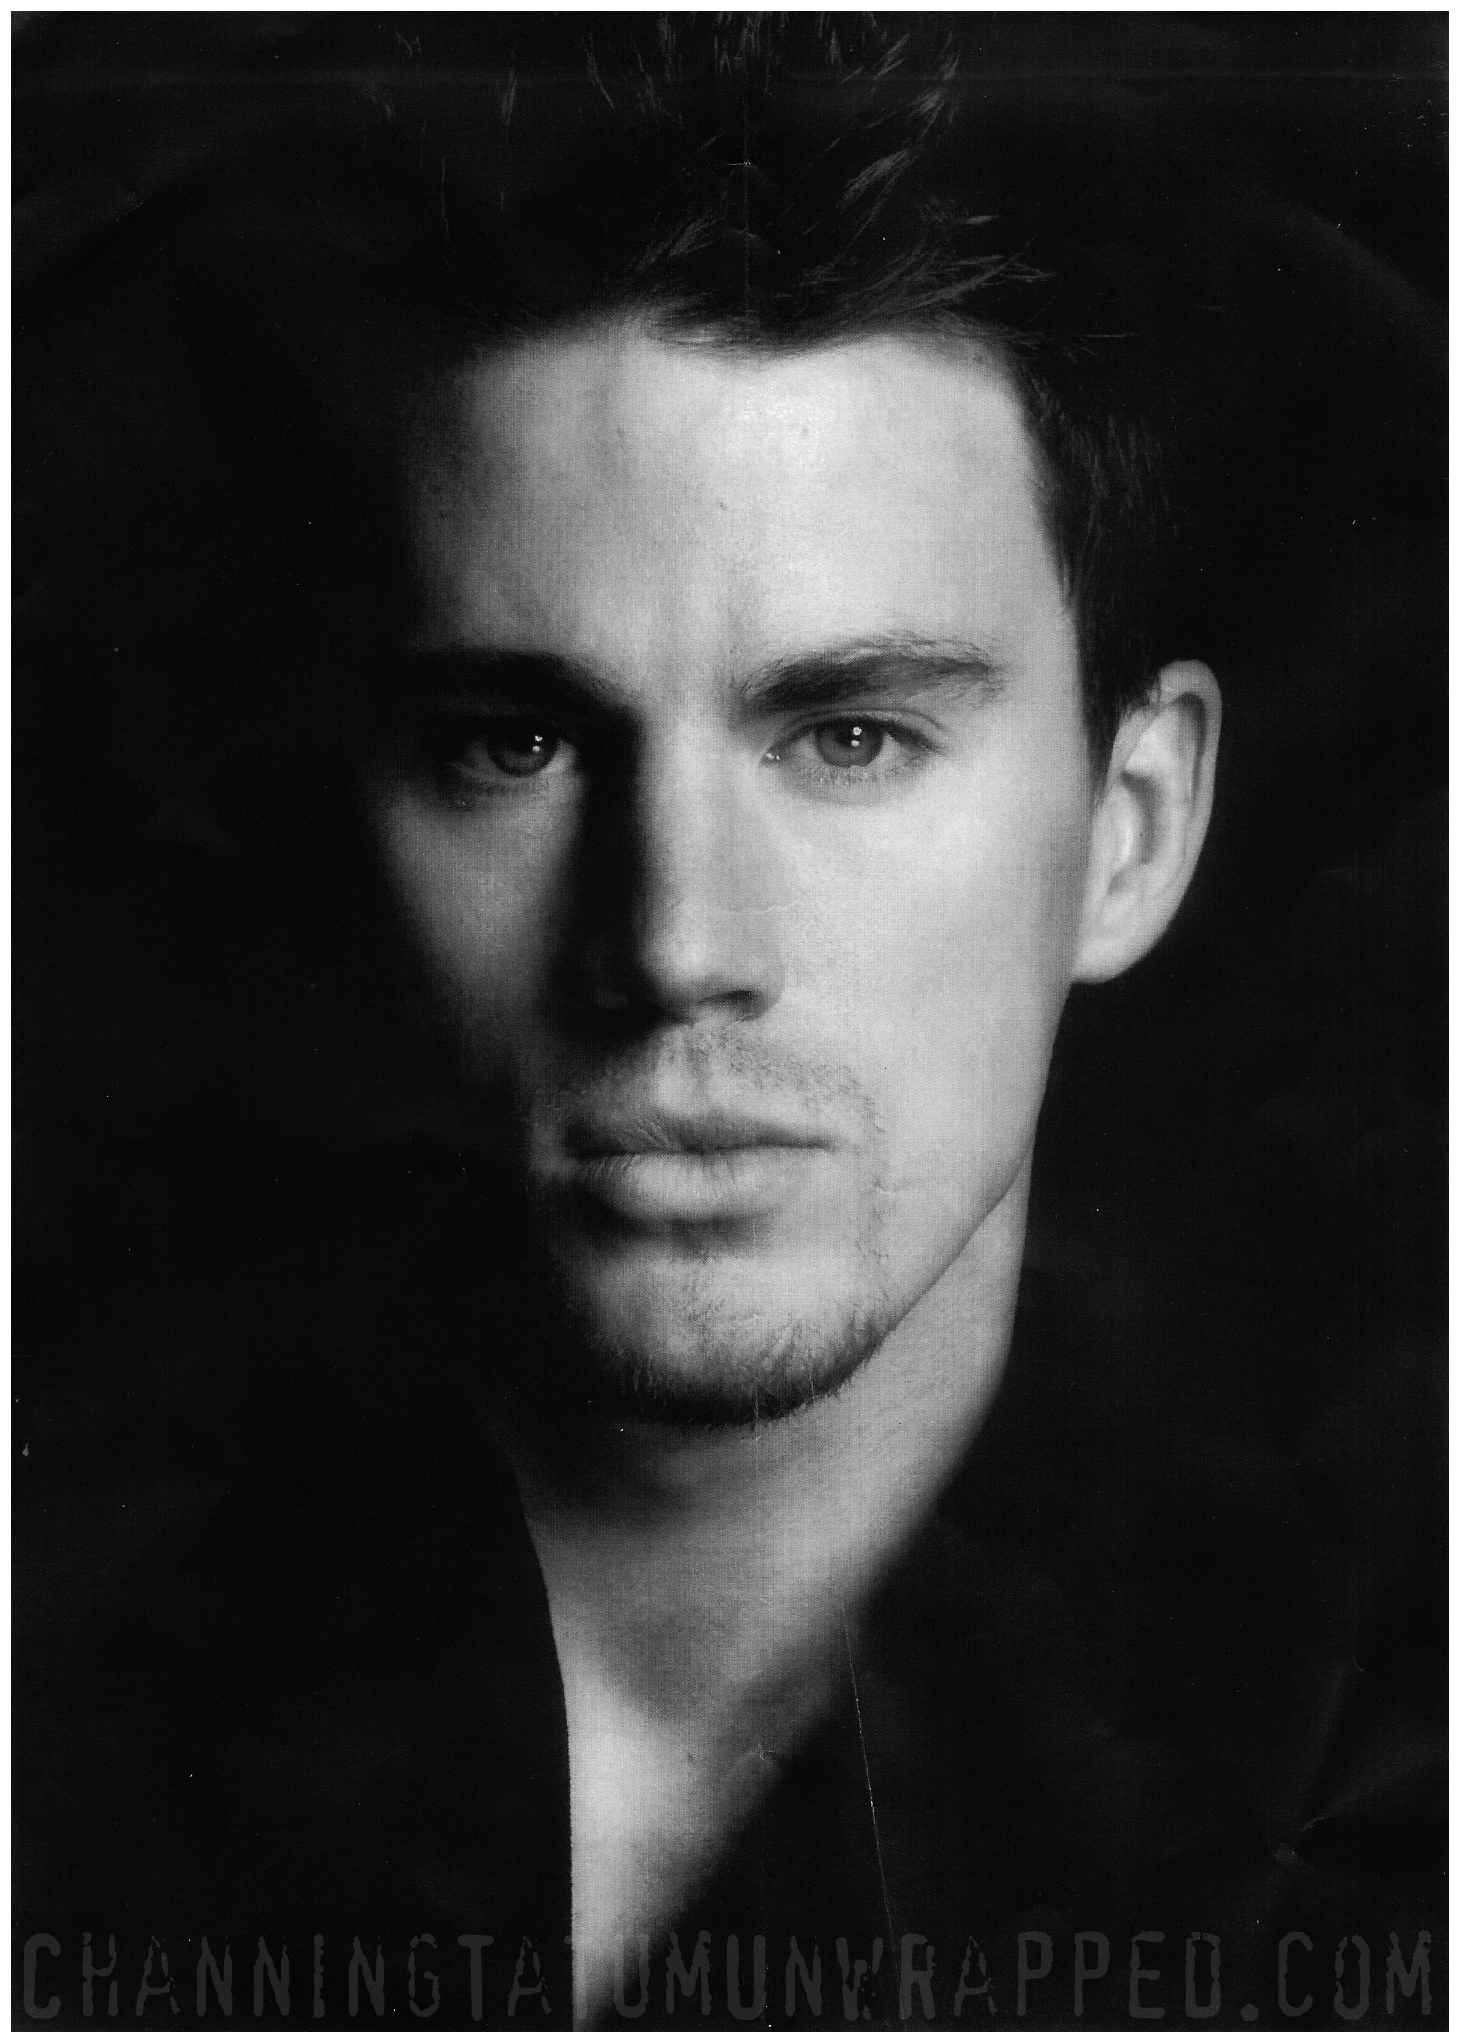 Channing Tatum Headshot by Greg Gorman (High Quality HQ)